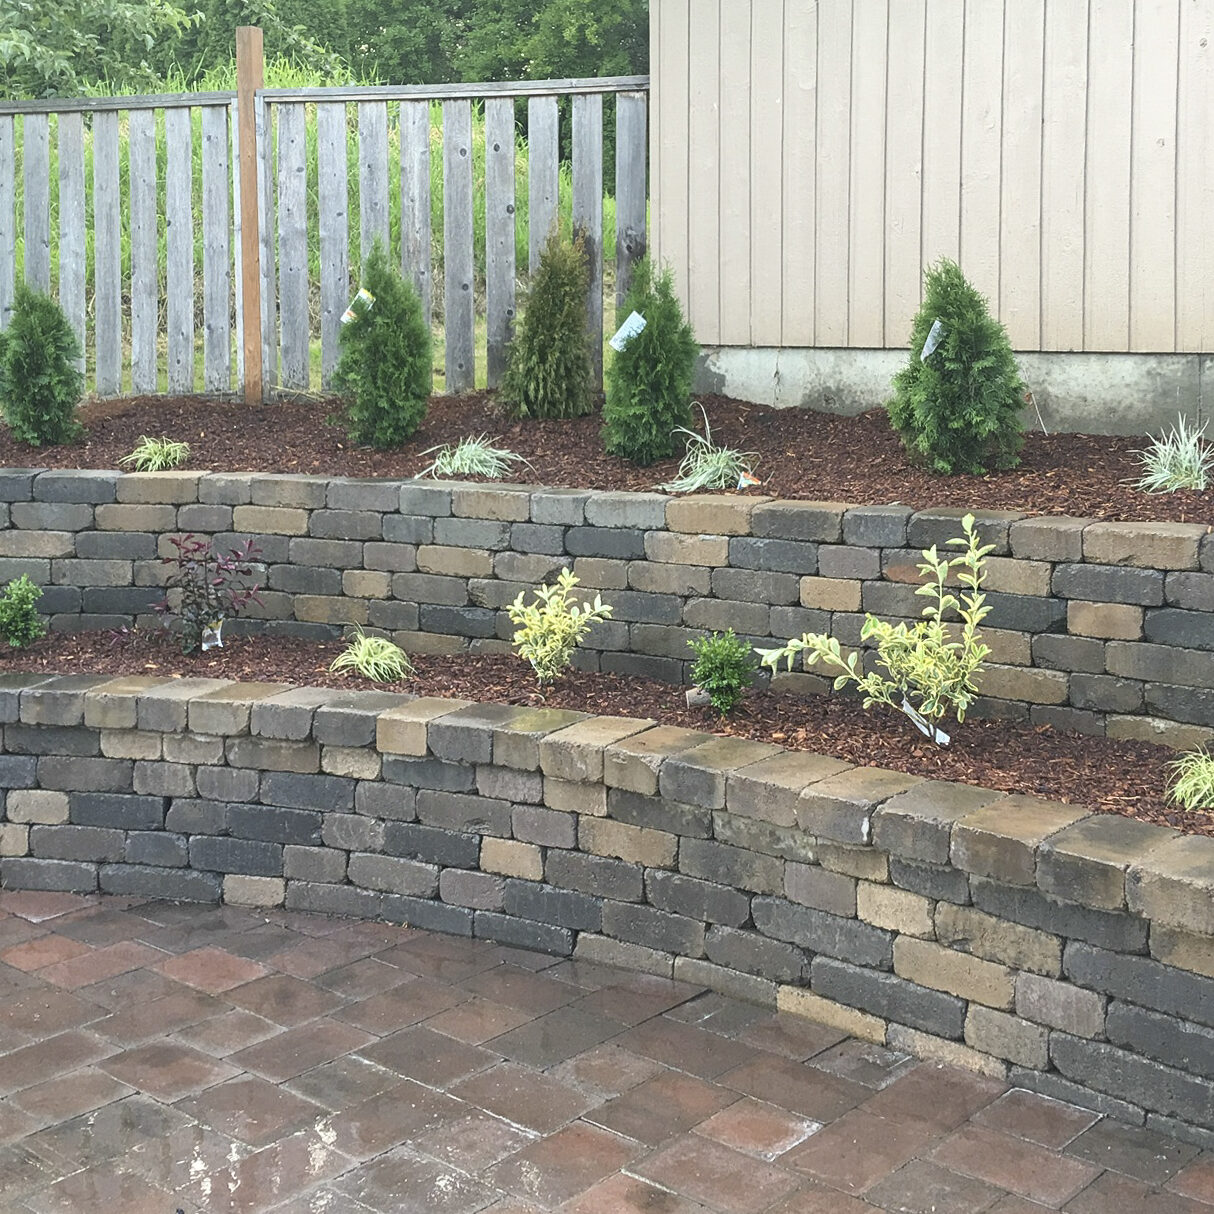 Retaining walls are great additions to your landscape or for structural integrity